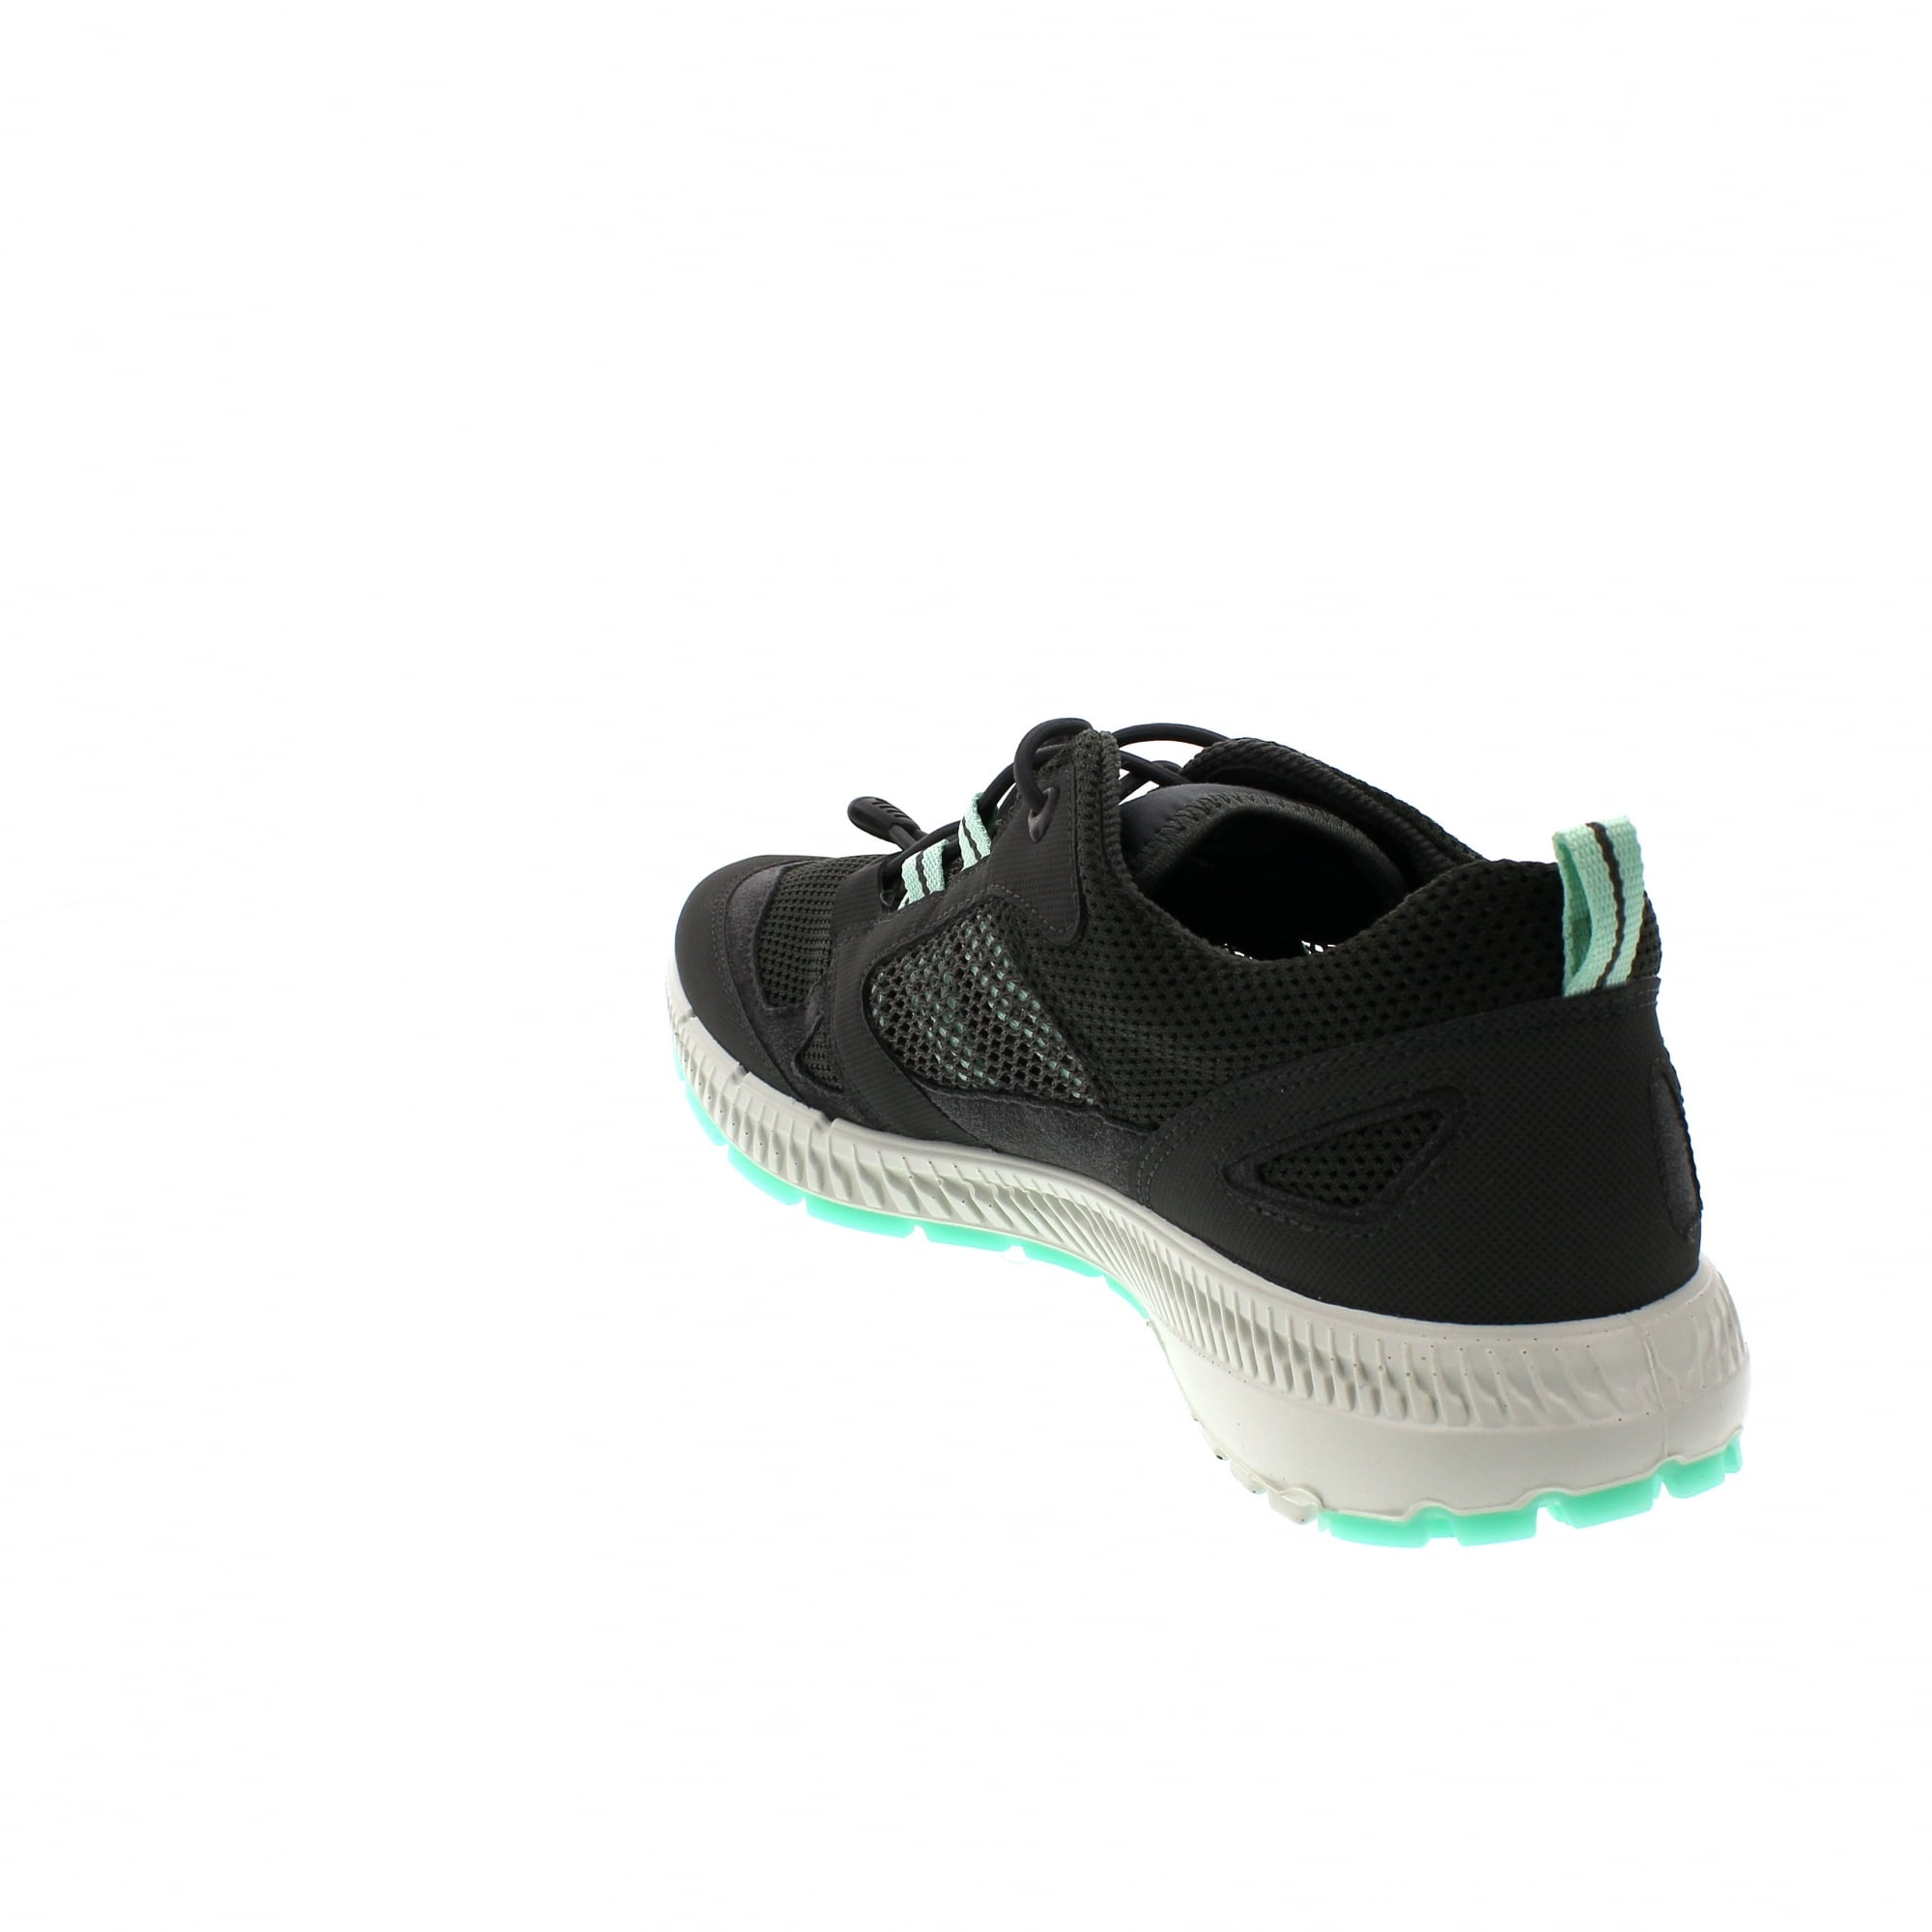 Ecco Terracruise II Facilis Damen Outdoor Schuh 843013